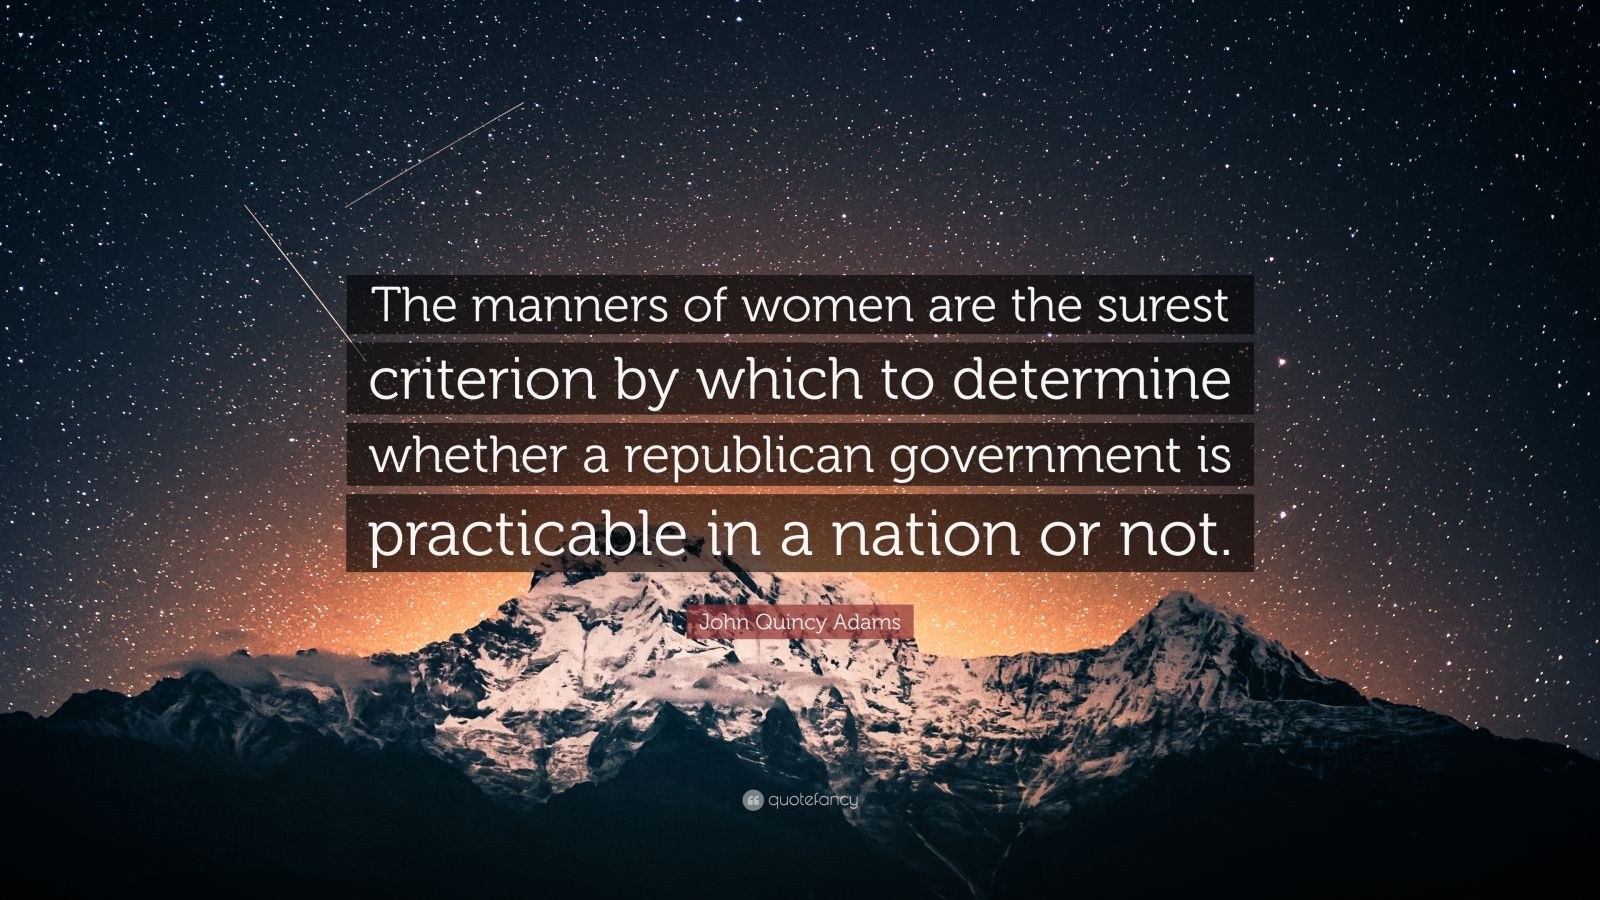 """John Quincy Adams Quote: """"The manners of women are the surest criterion by which to determine whether a republican government is practicable in a nation or not."""""""